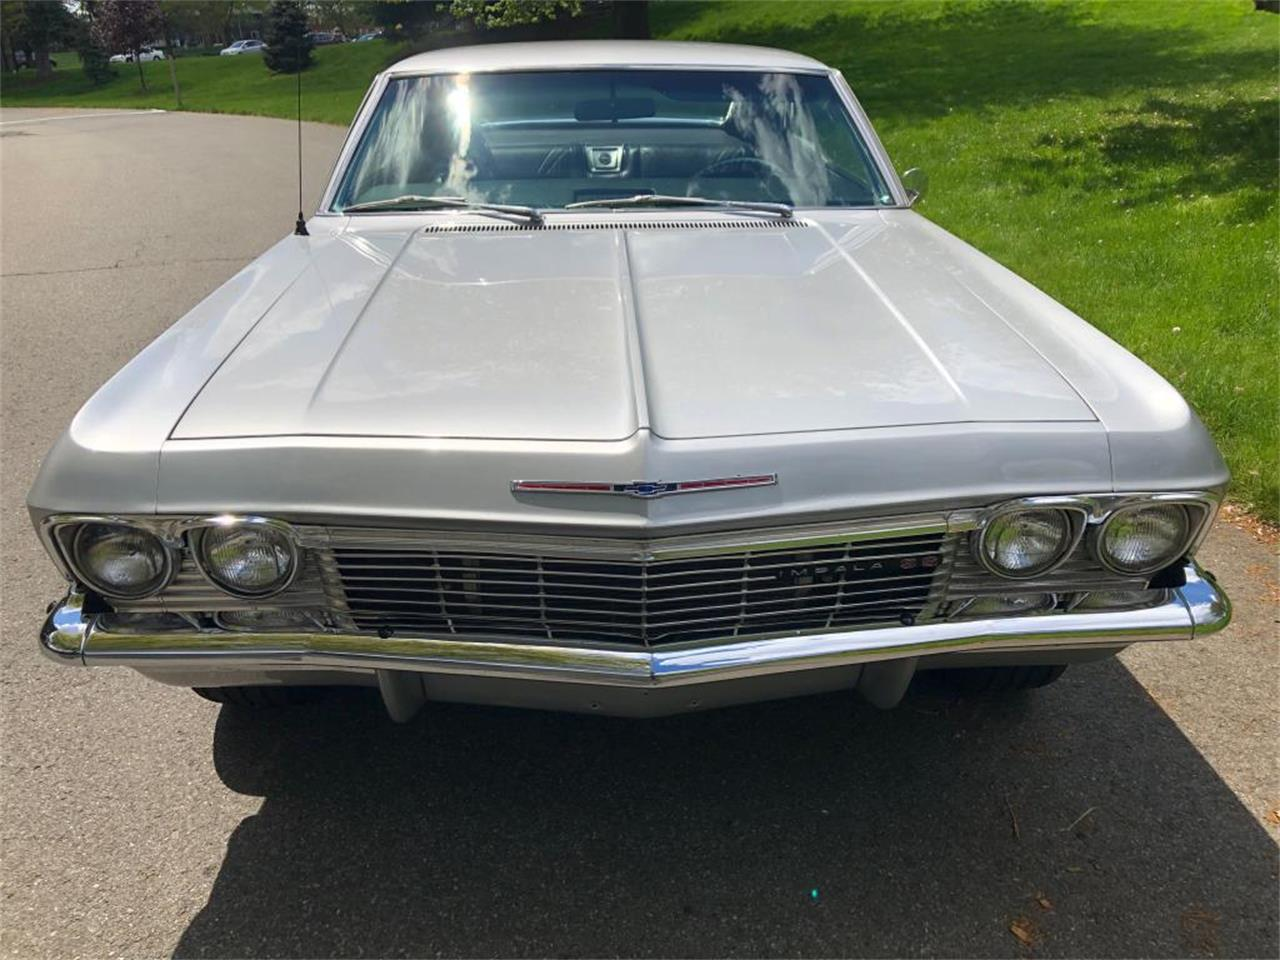 Large Picture of Classic '65 Chevrolet Impala located in Connecticut - $34,000.00 - Q47Y